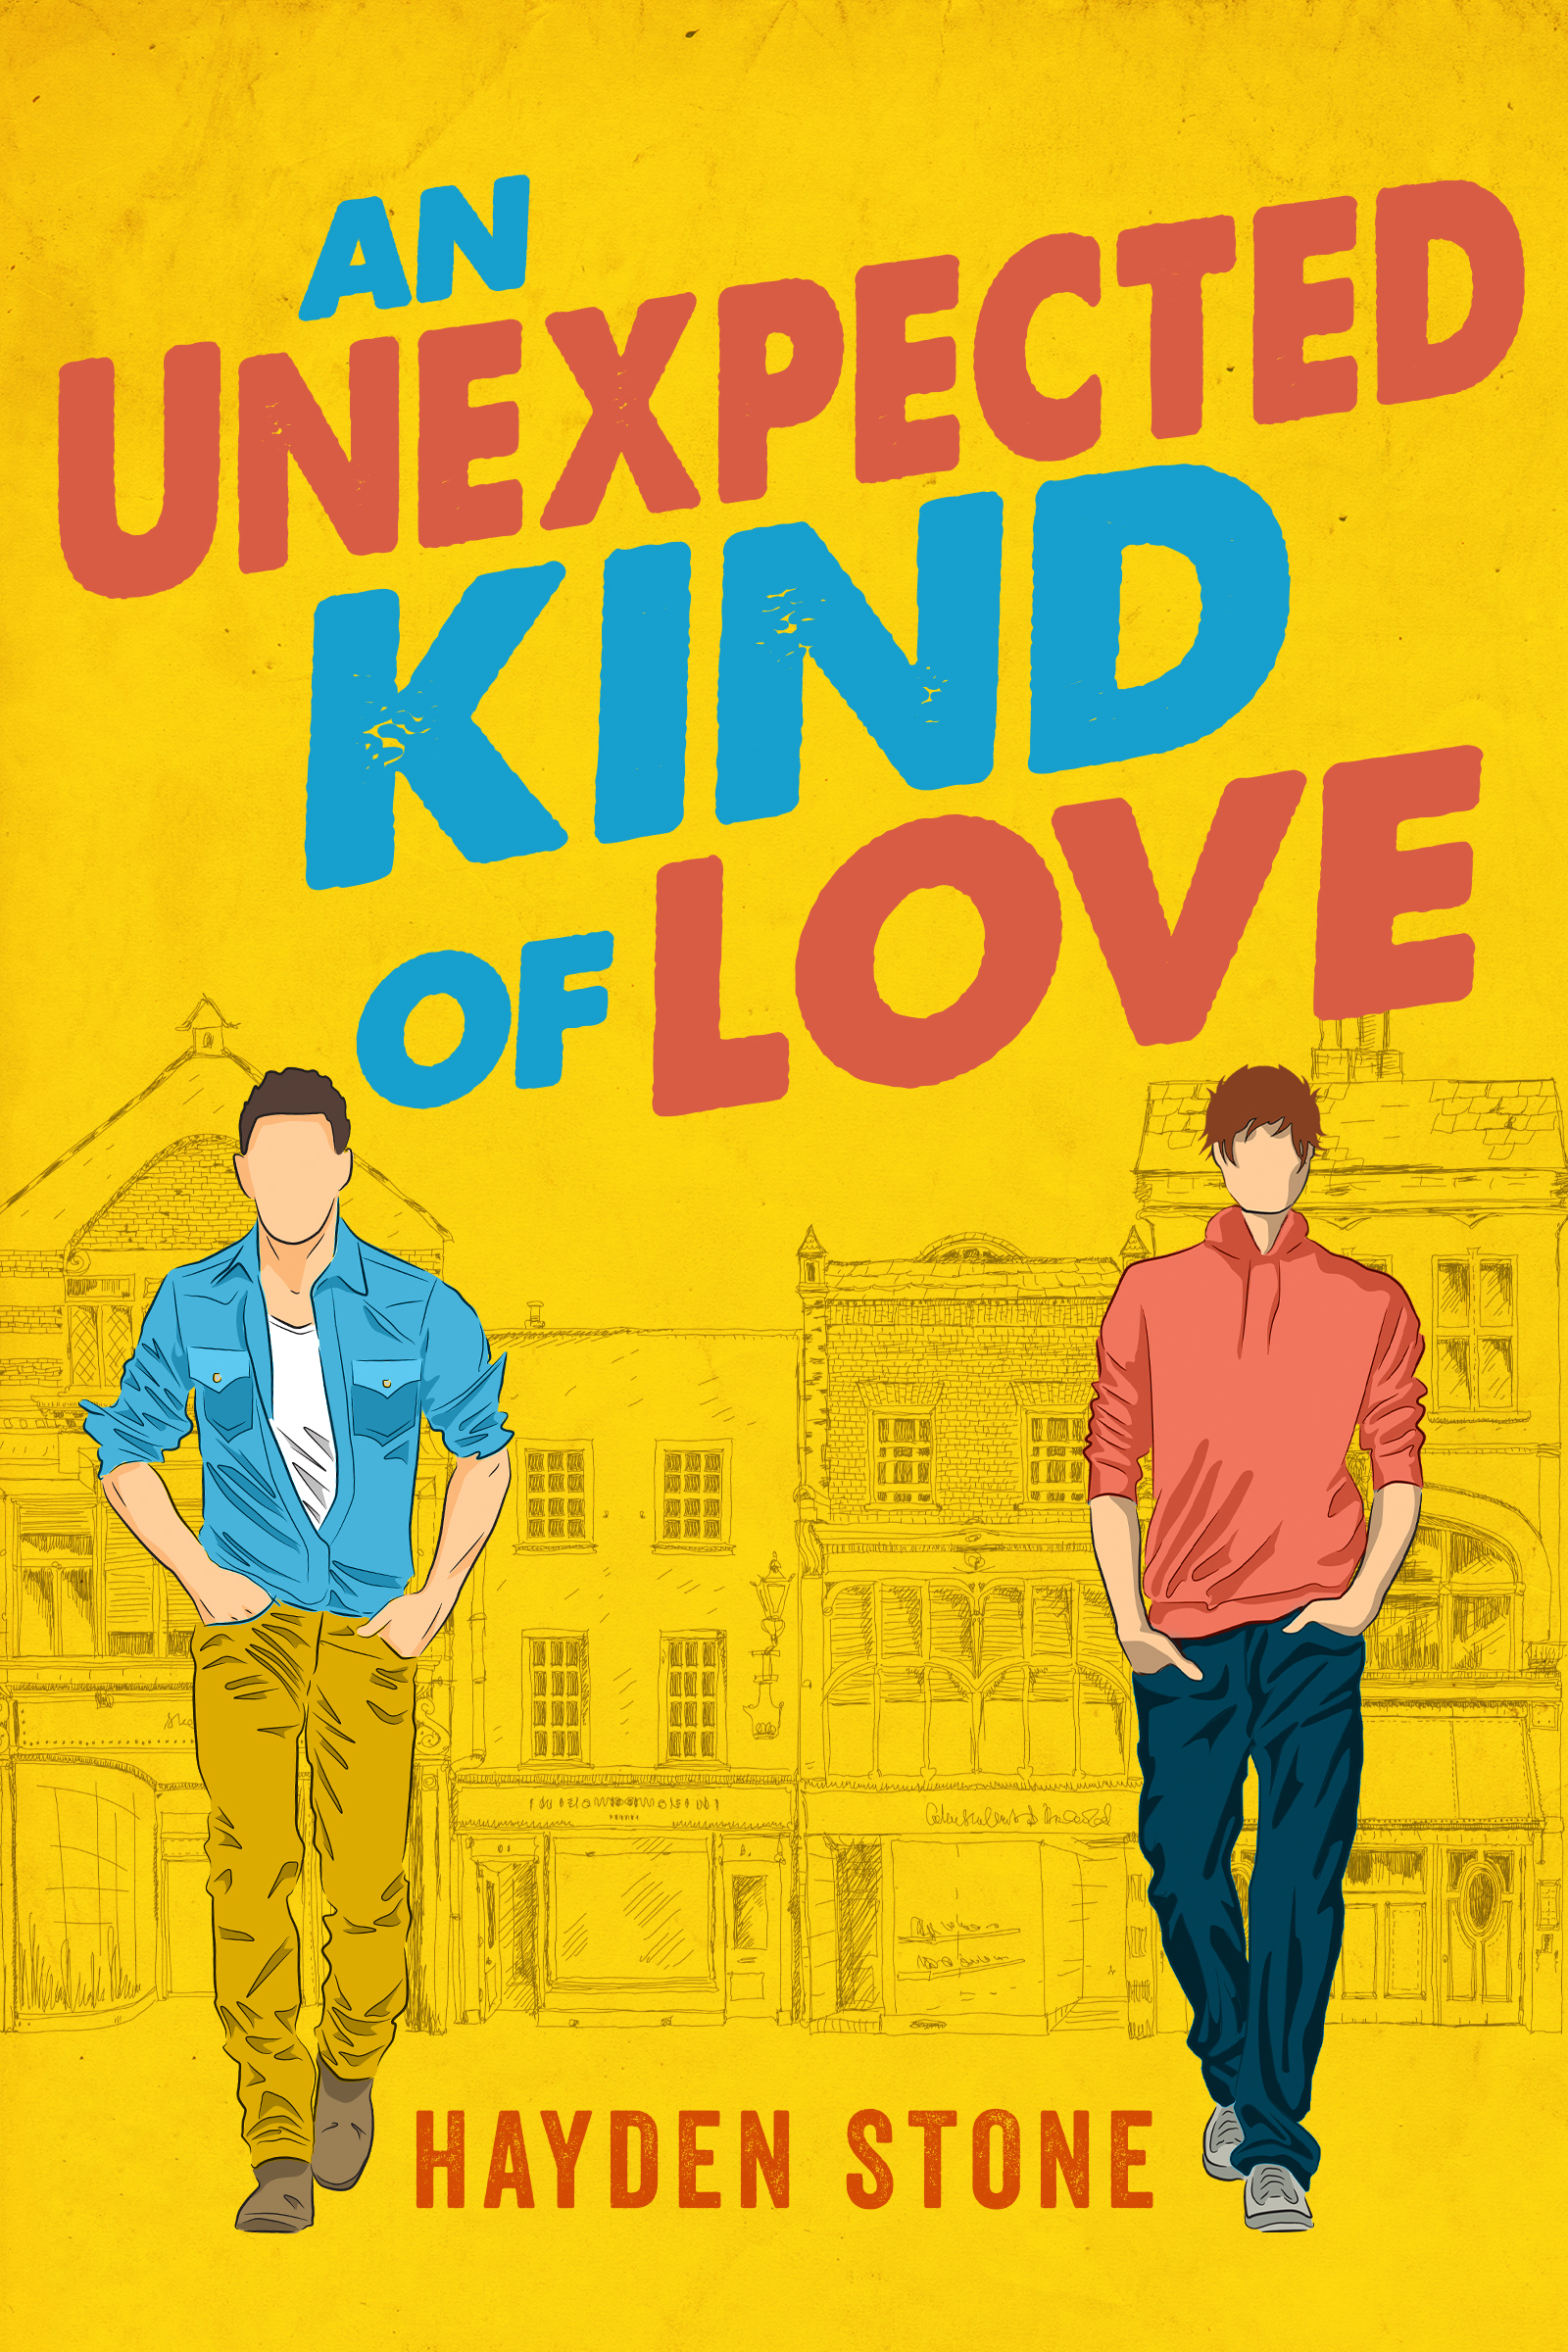 """Book cover of """"An Unexpected Kind of Love"""" by Hayden Stone. On the cover there are two men walking in front of buildings."""